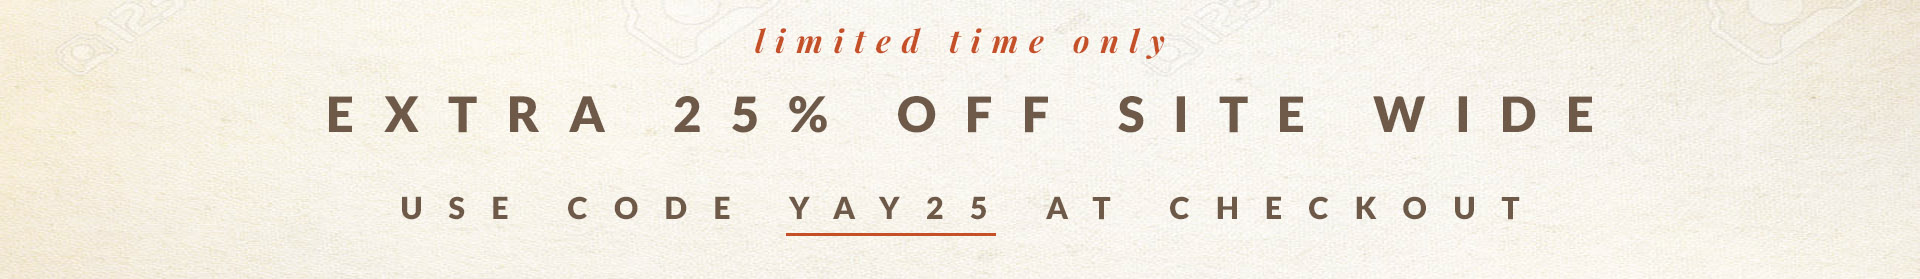 Limited Time Only | Extra 25% Off Site Wide | Use code YAY25 at checkout